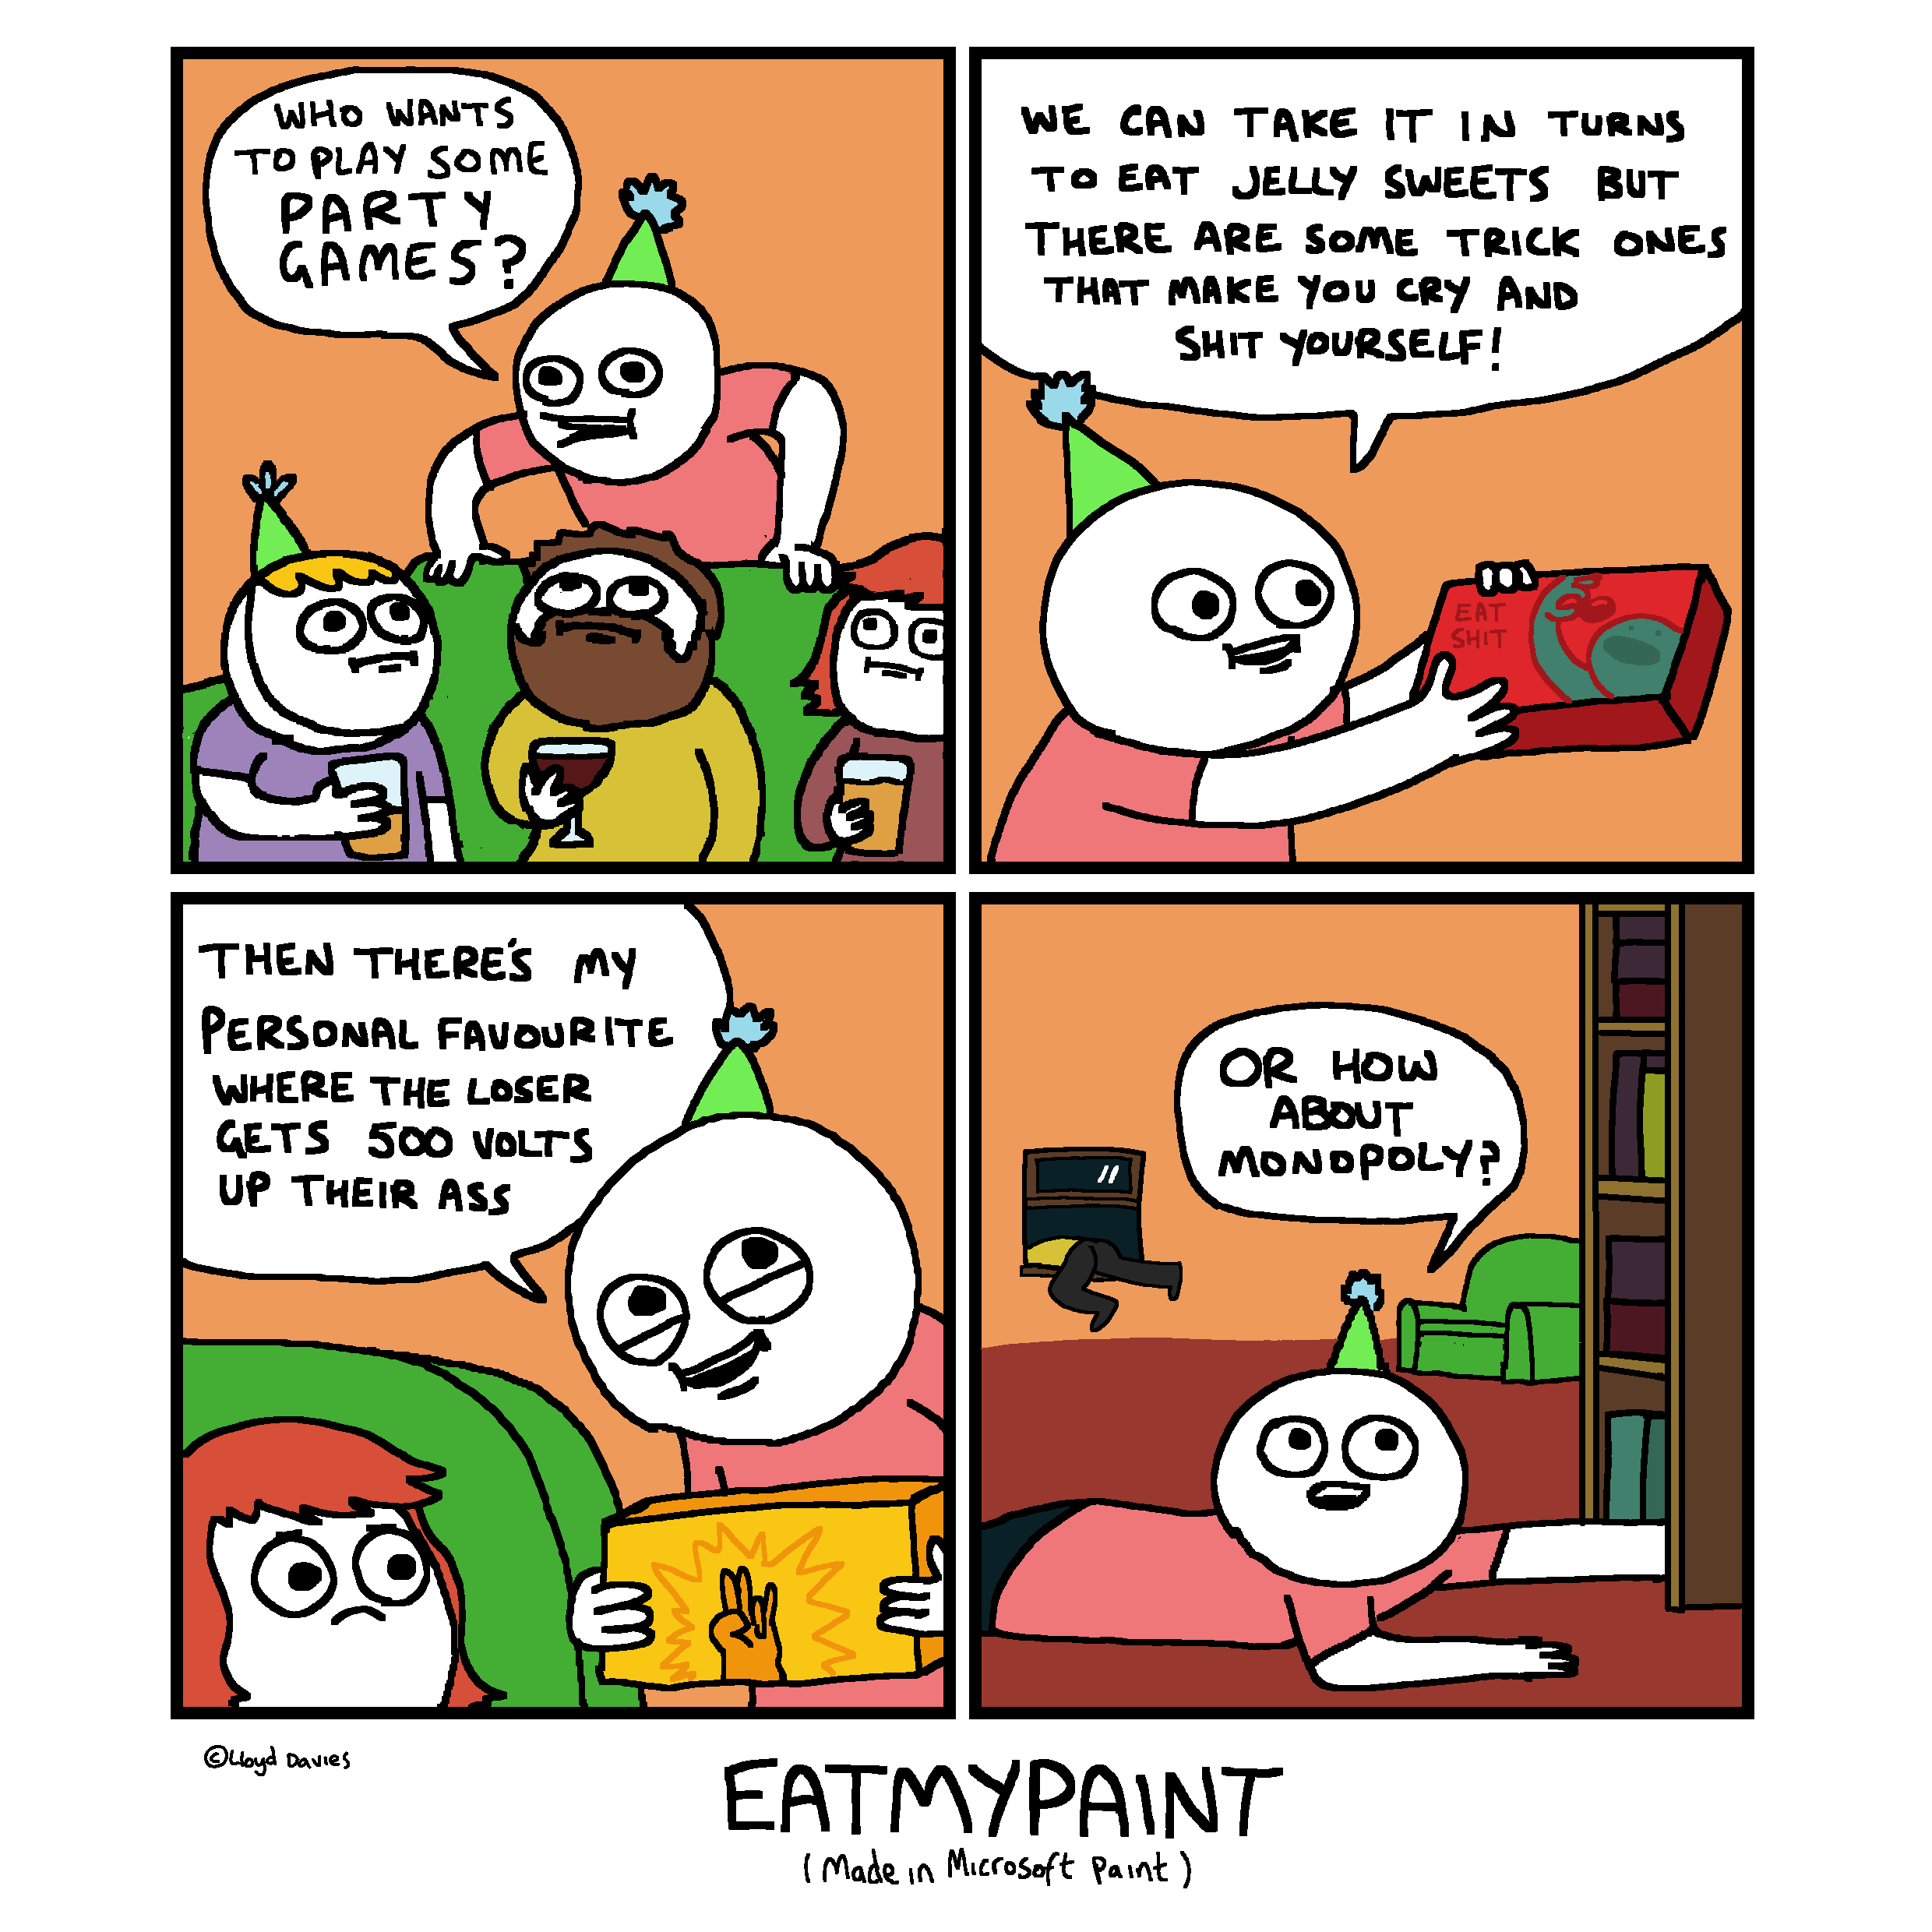 Look out for the Eatmypaint Board Game coming soon to torture houses near you!